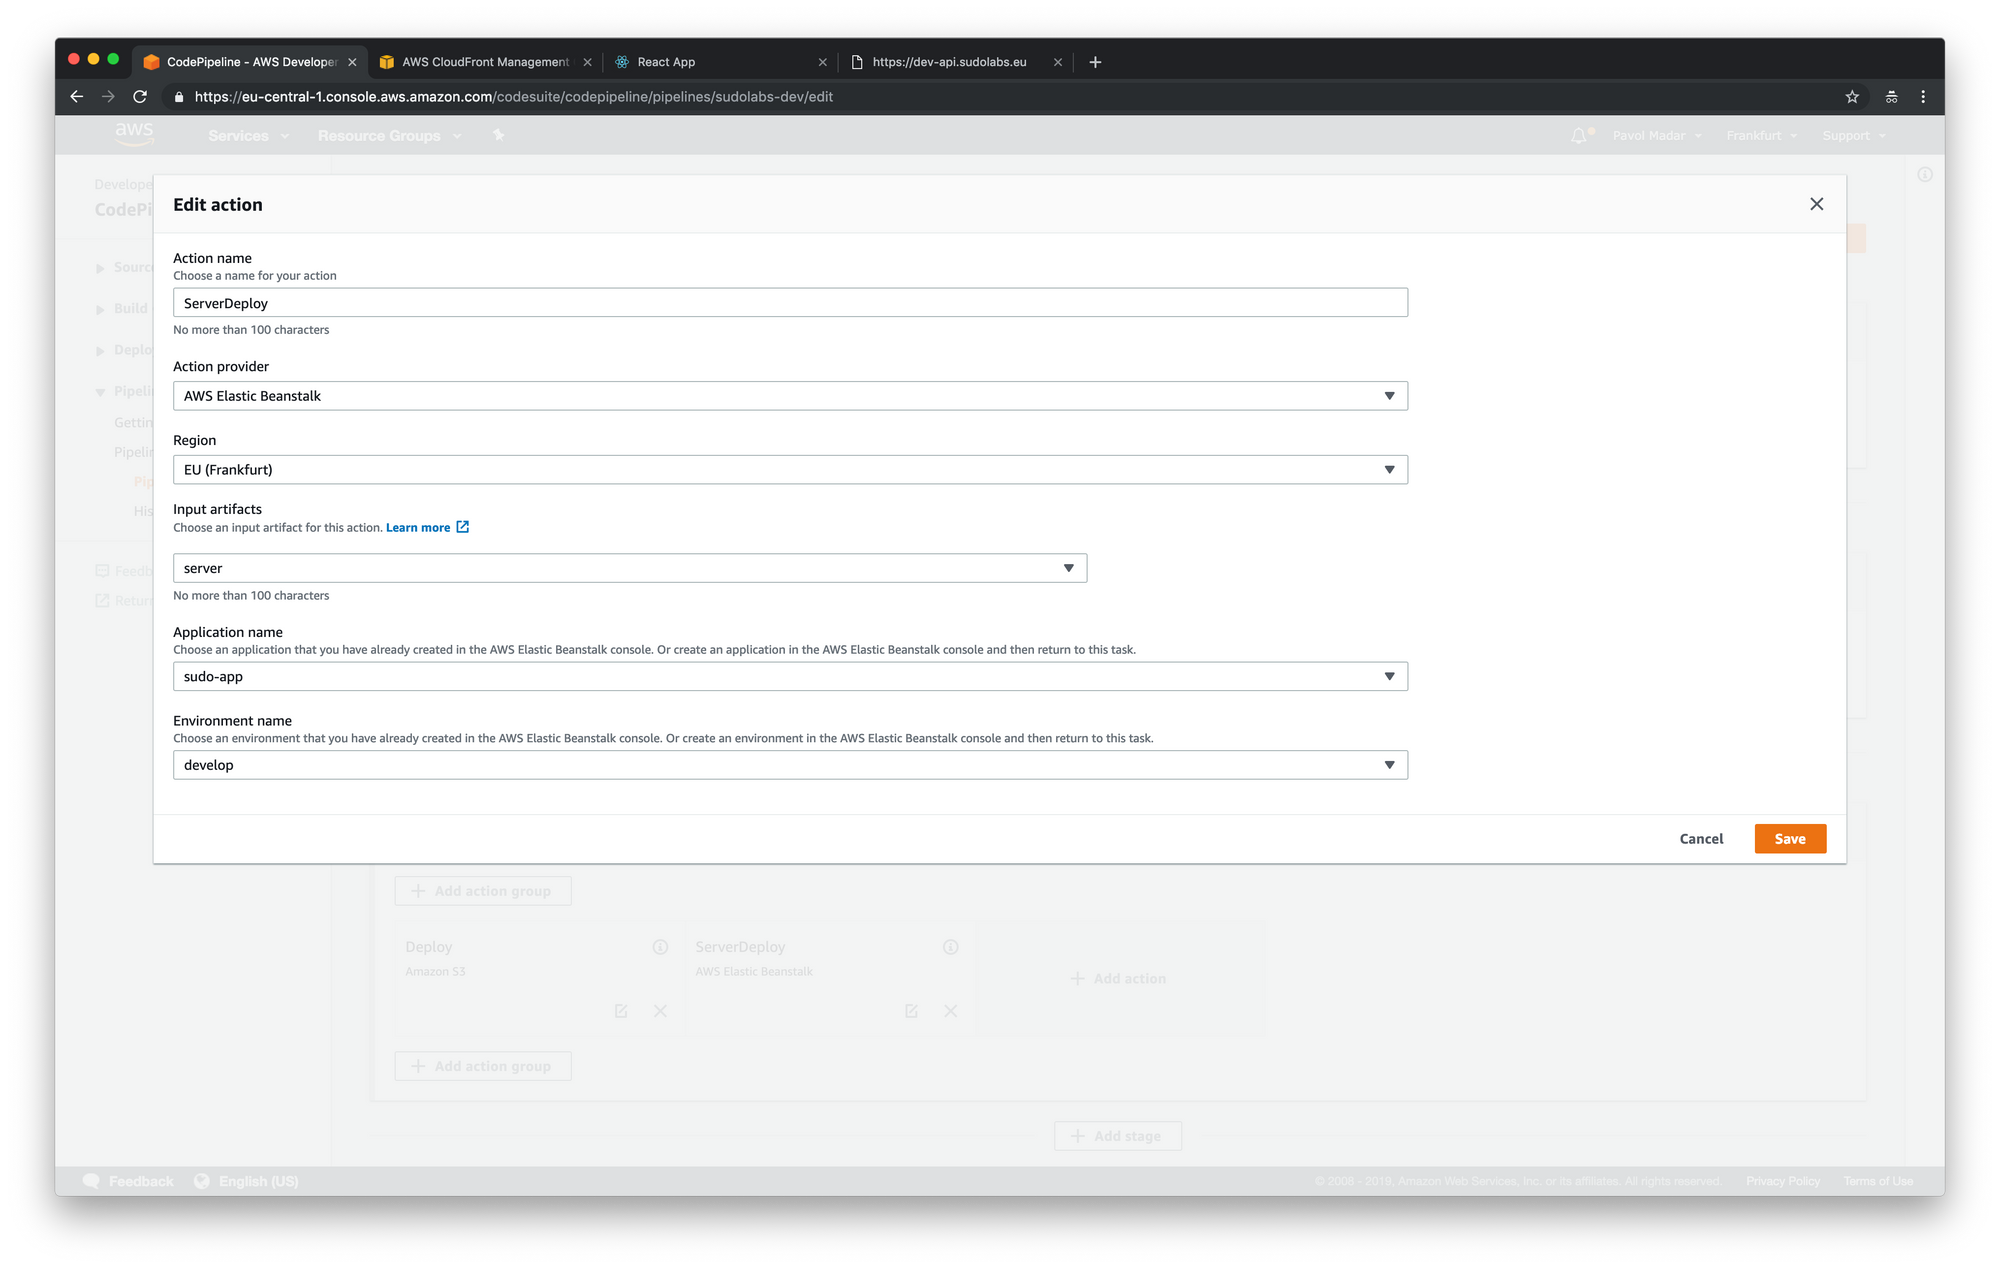 AWS CodePipeline - add action into the deploy step